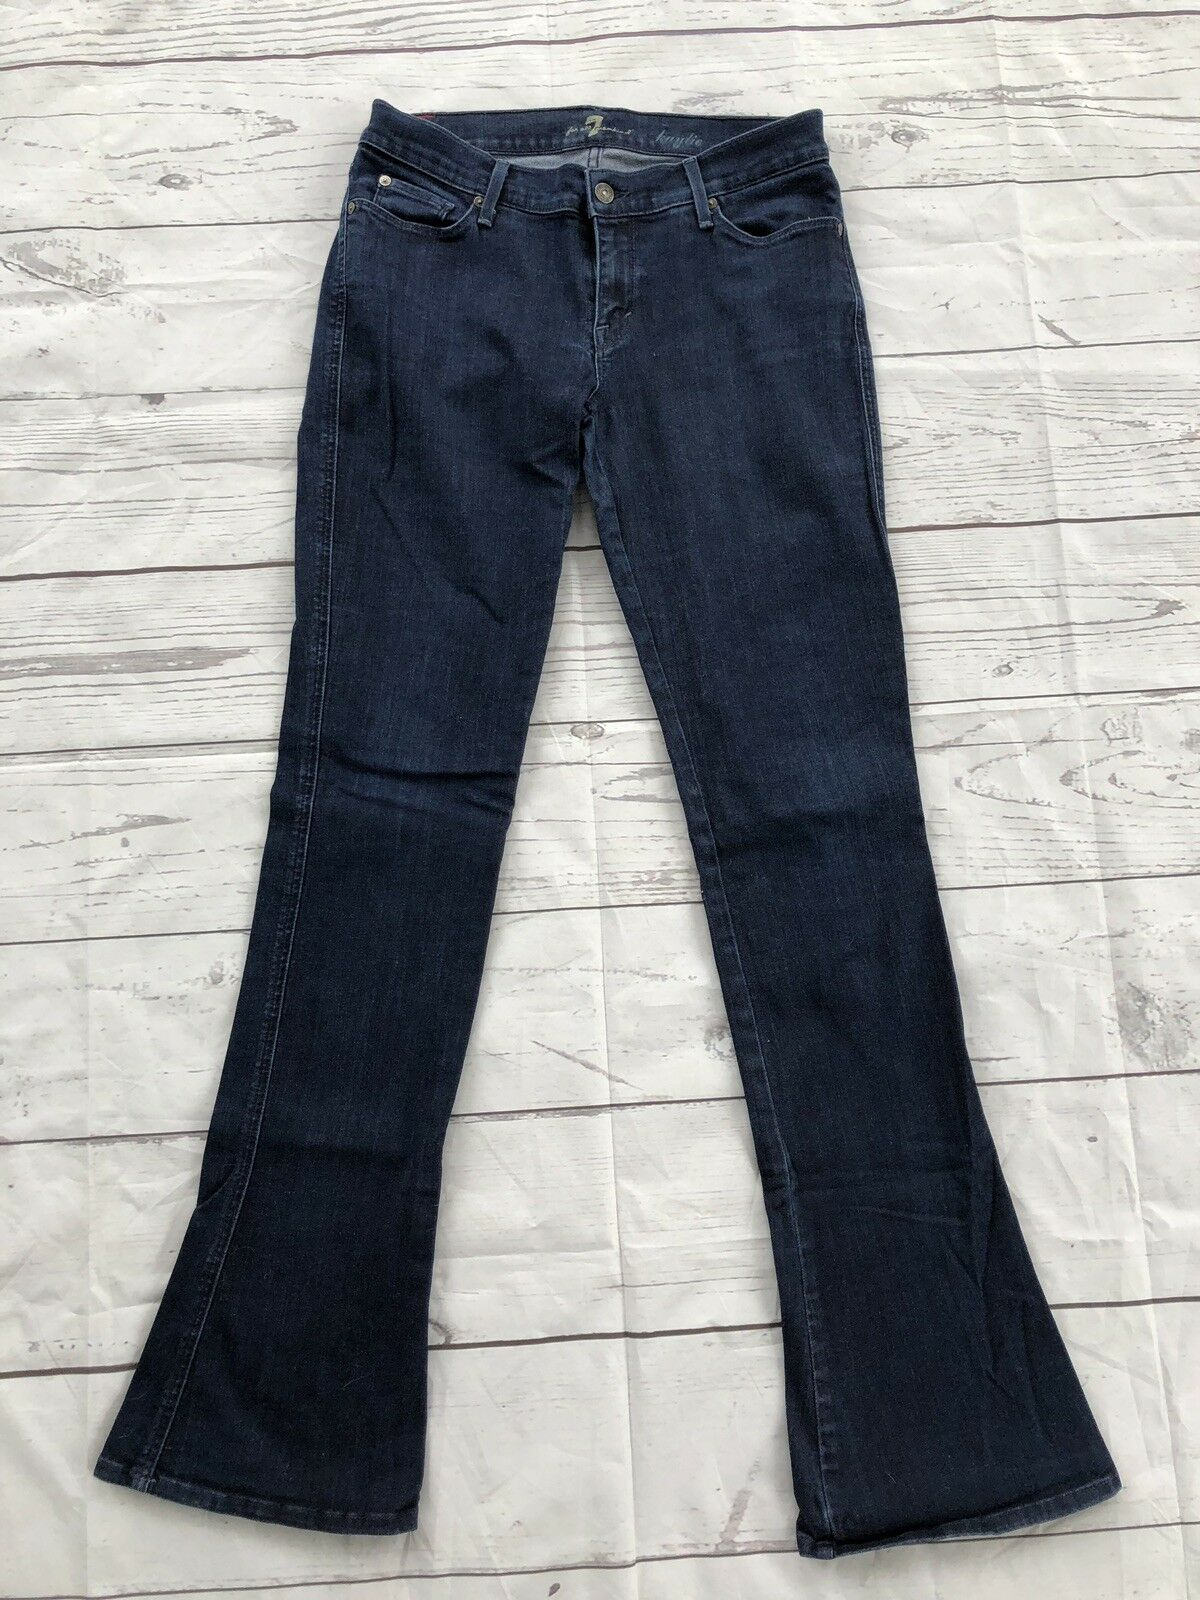 7 For All Mankind Womens Kaylie Dark bluee Flare Size 30